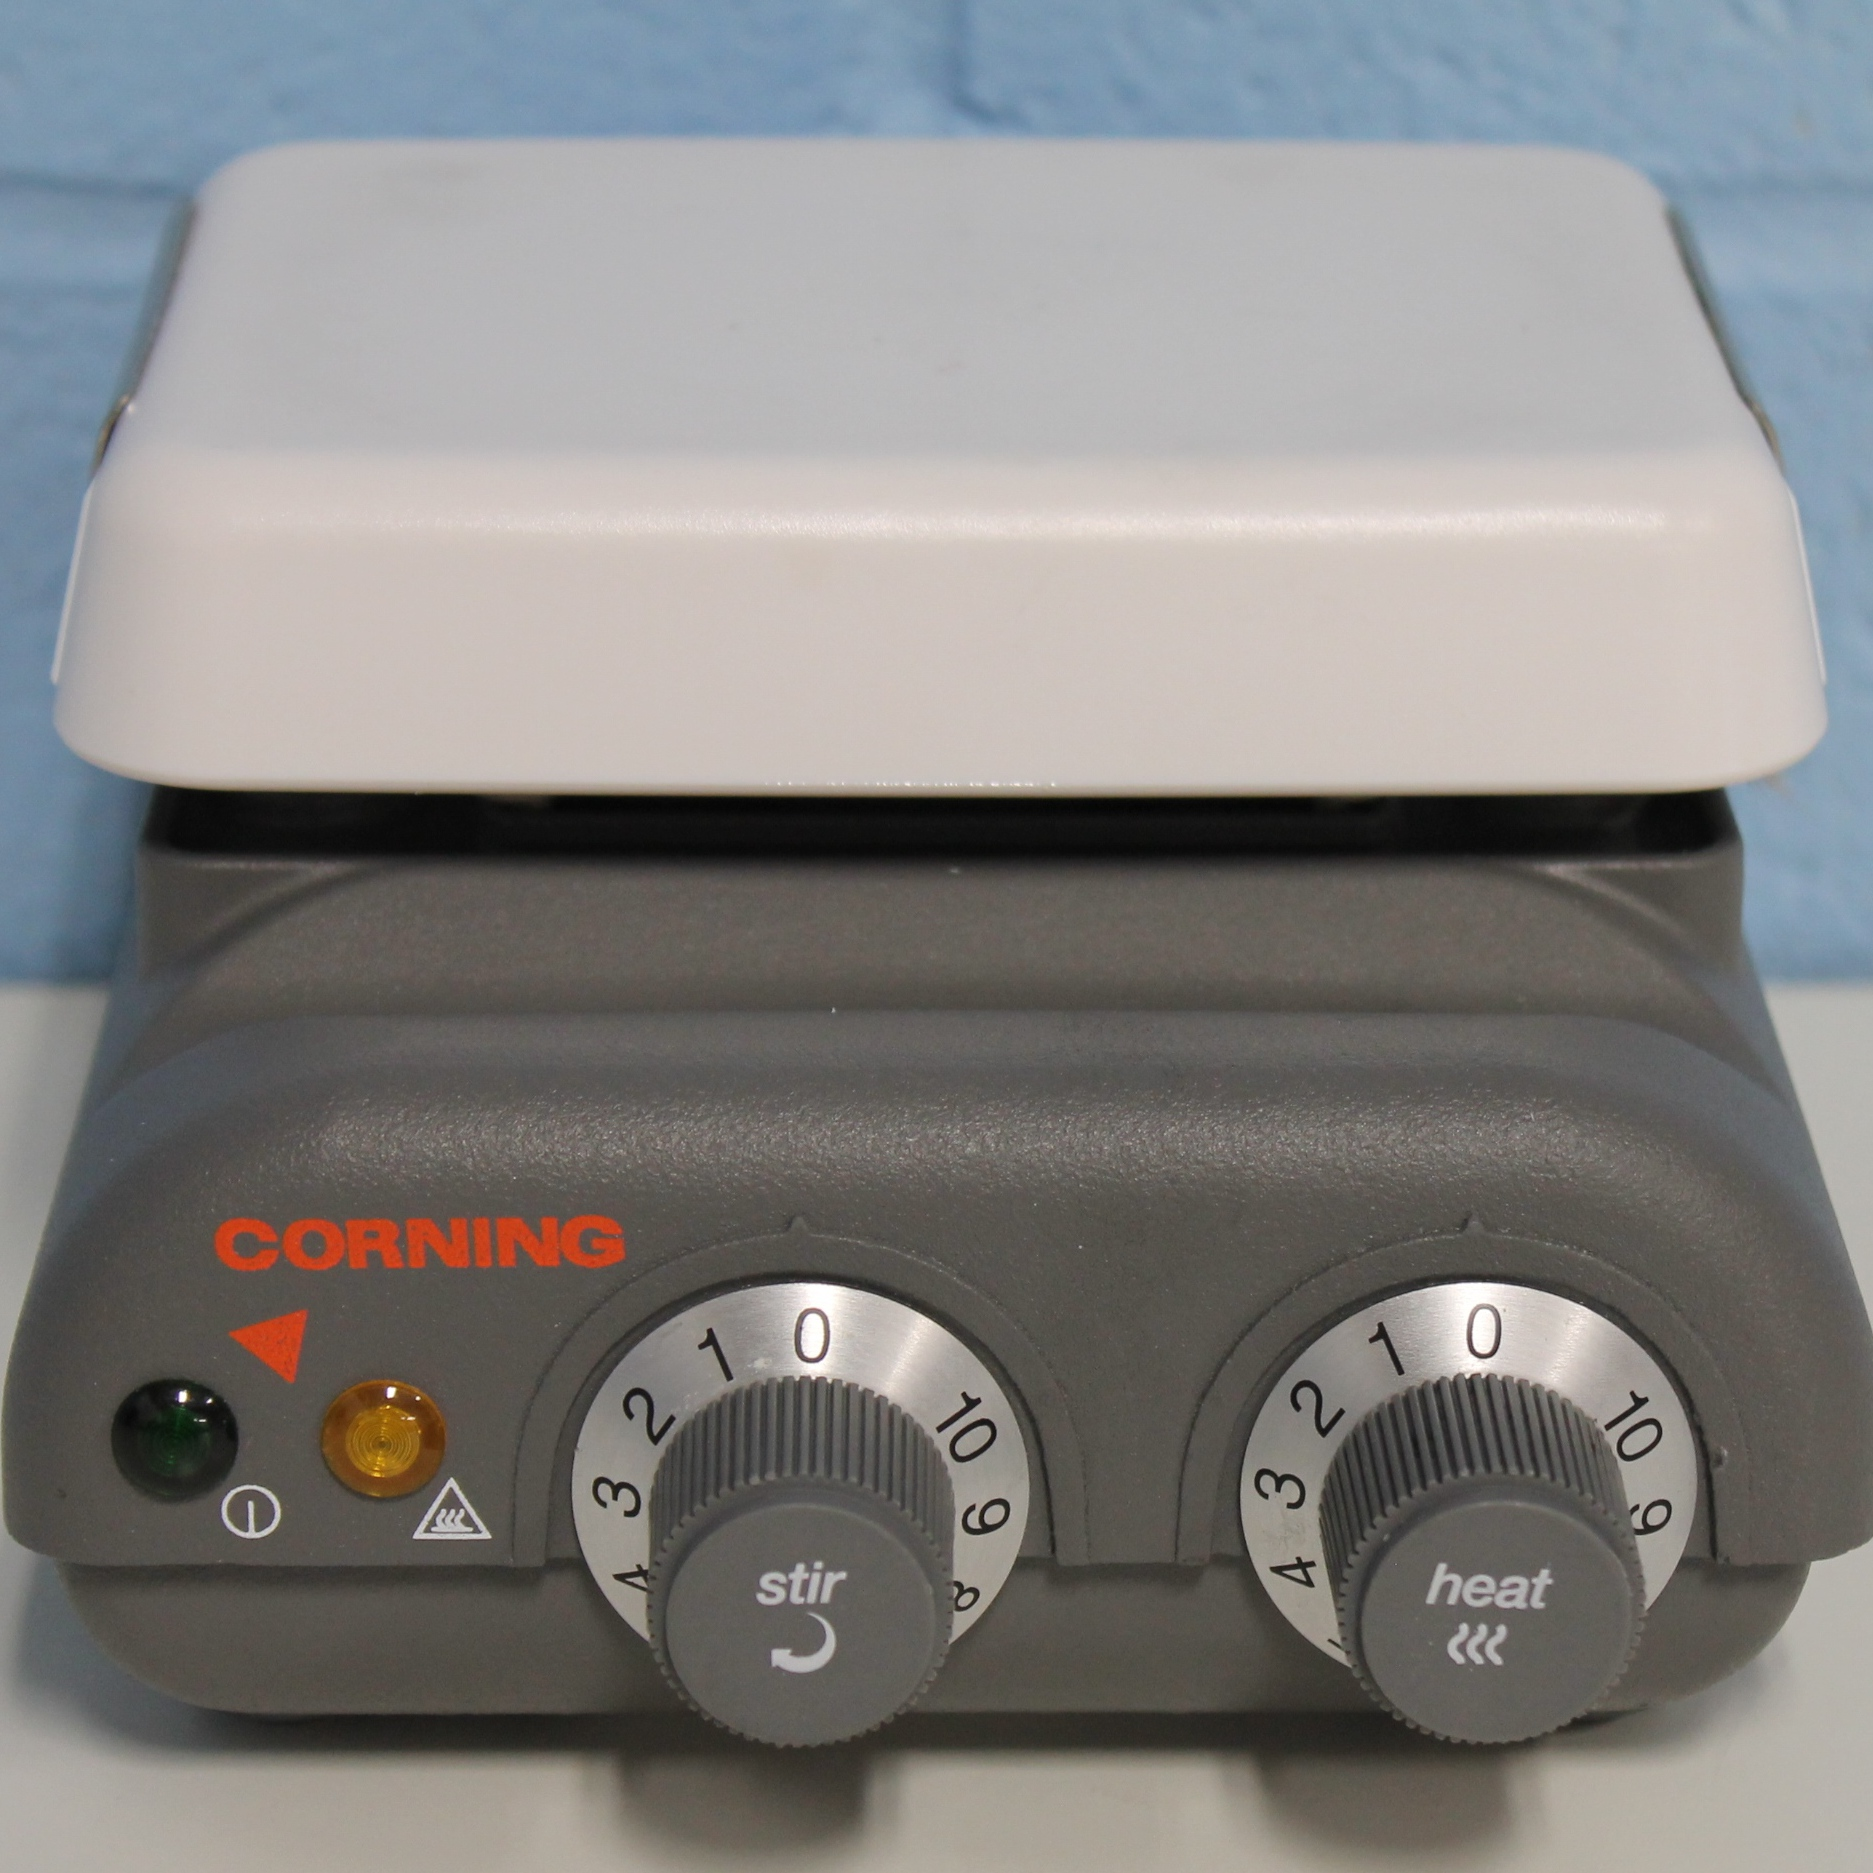 Corning PC-220 Hot Plate Stirrer with 4 x 5-Inch Pyroceram Plate Image